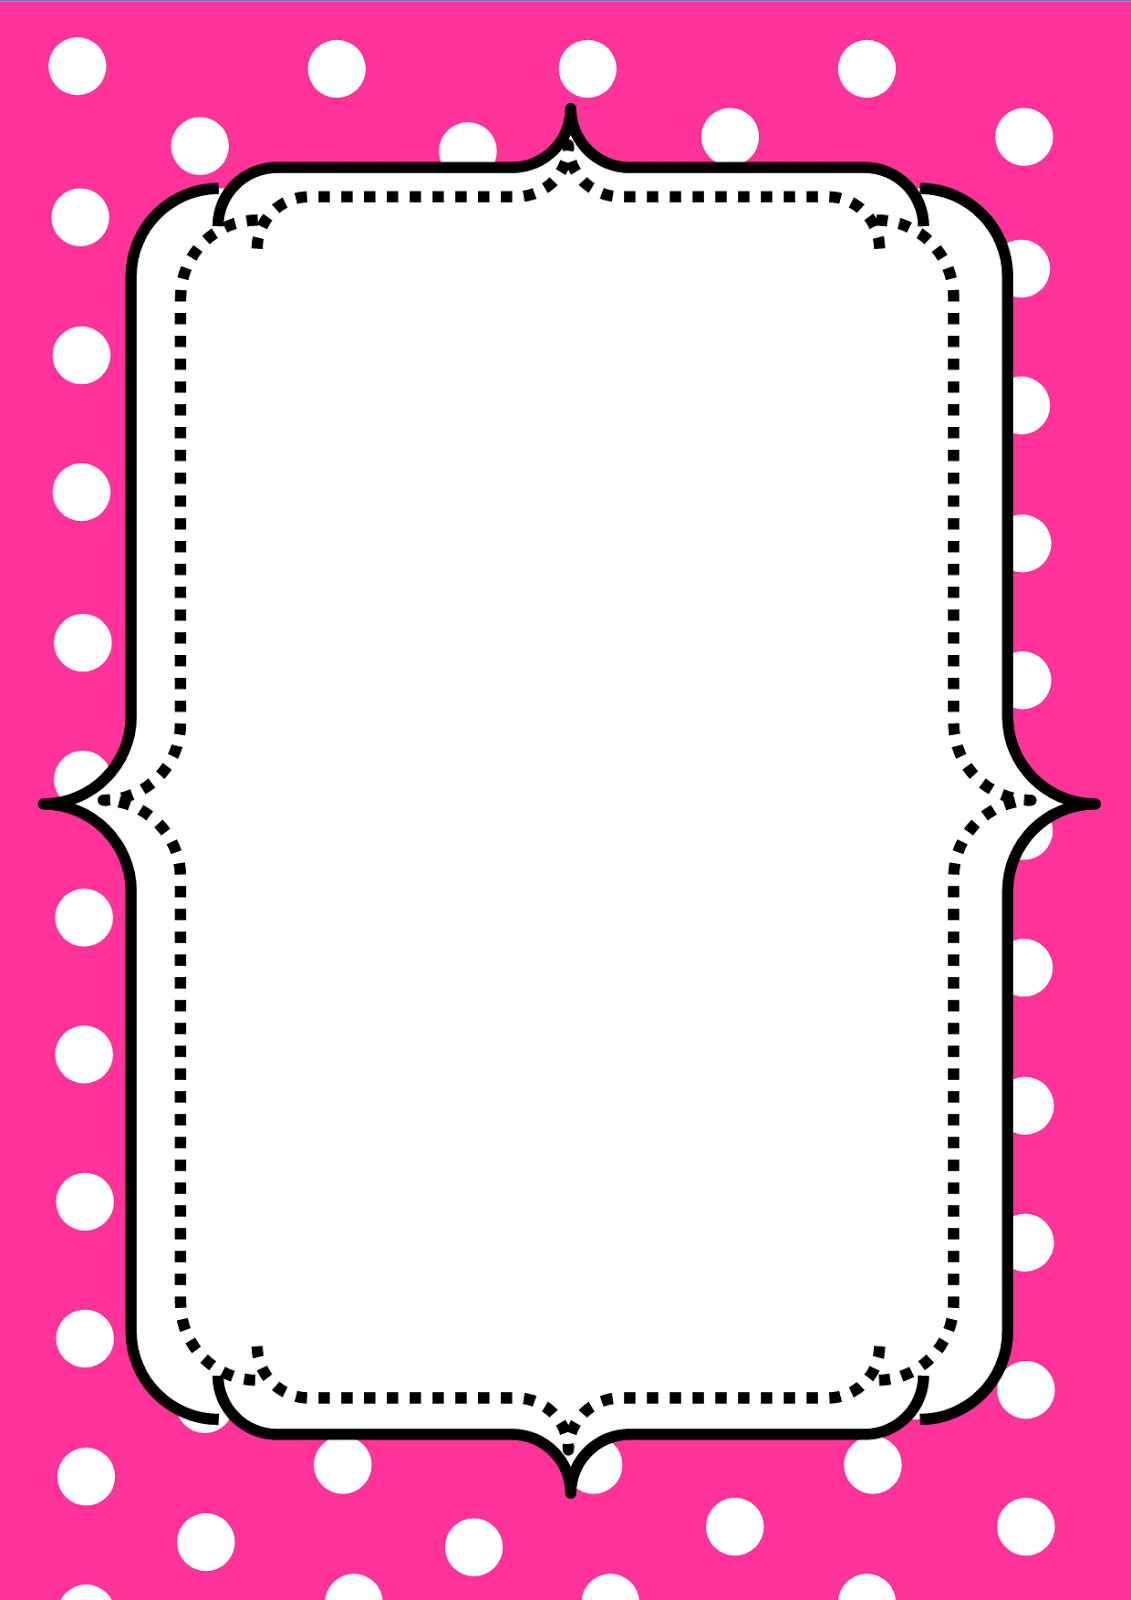 Baby Girl Borders Clipart - Clipart Kid